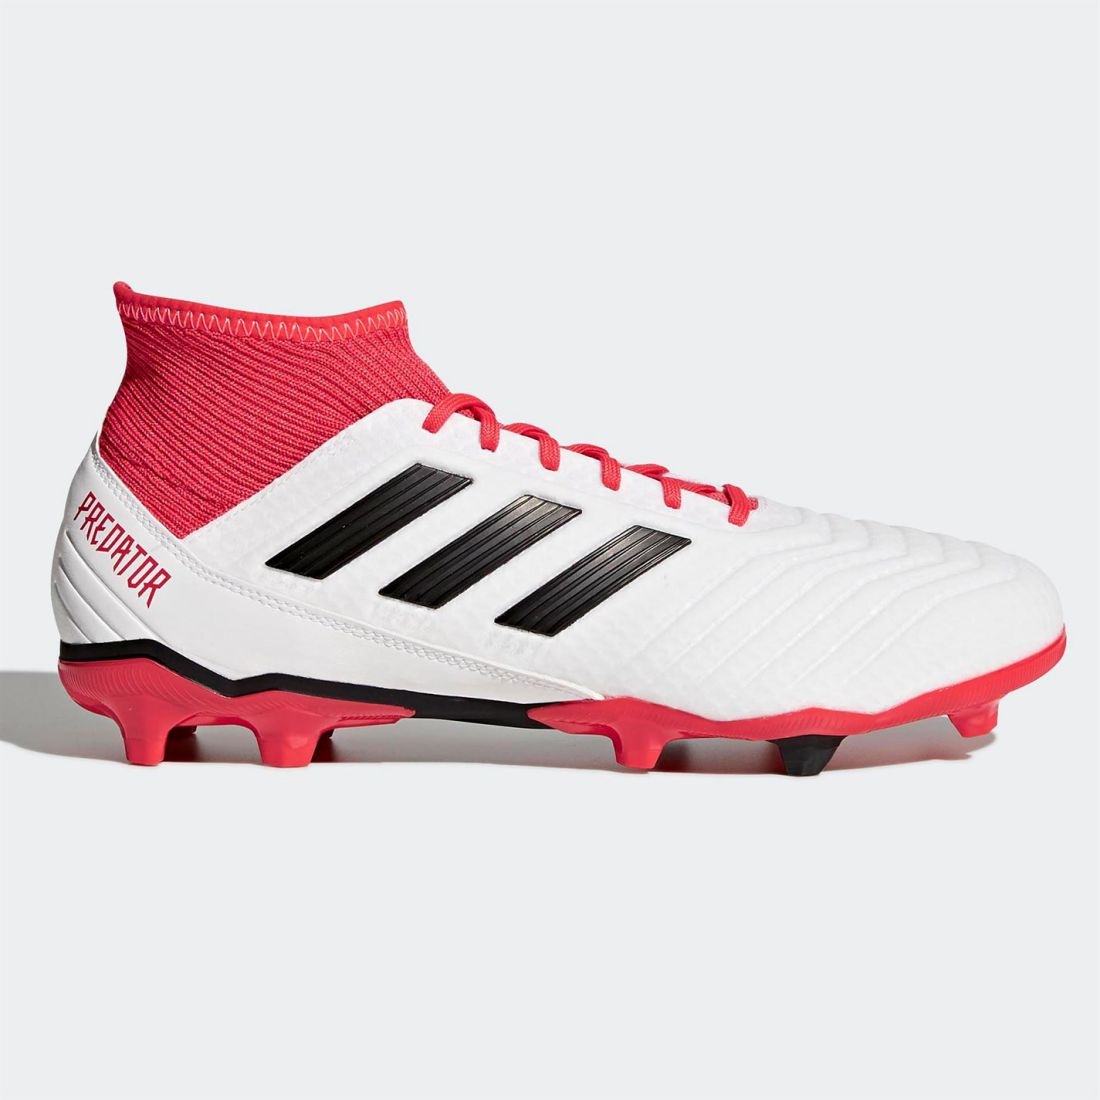 Adidas Mens Predator 18.3 FG Football Boots Firm Ground Lace Up Mesh Upper Studs